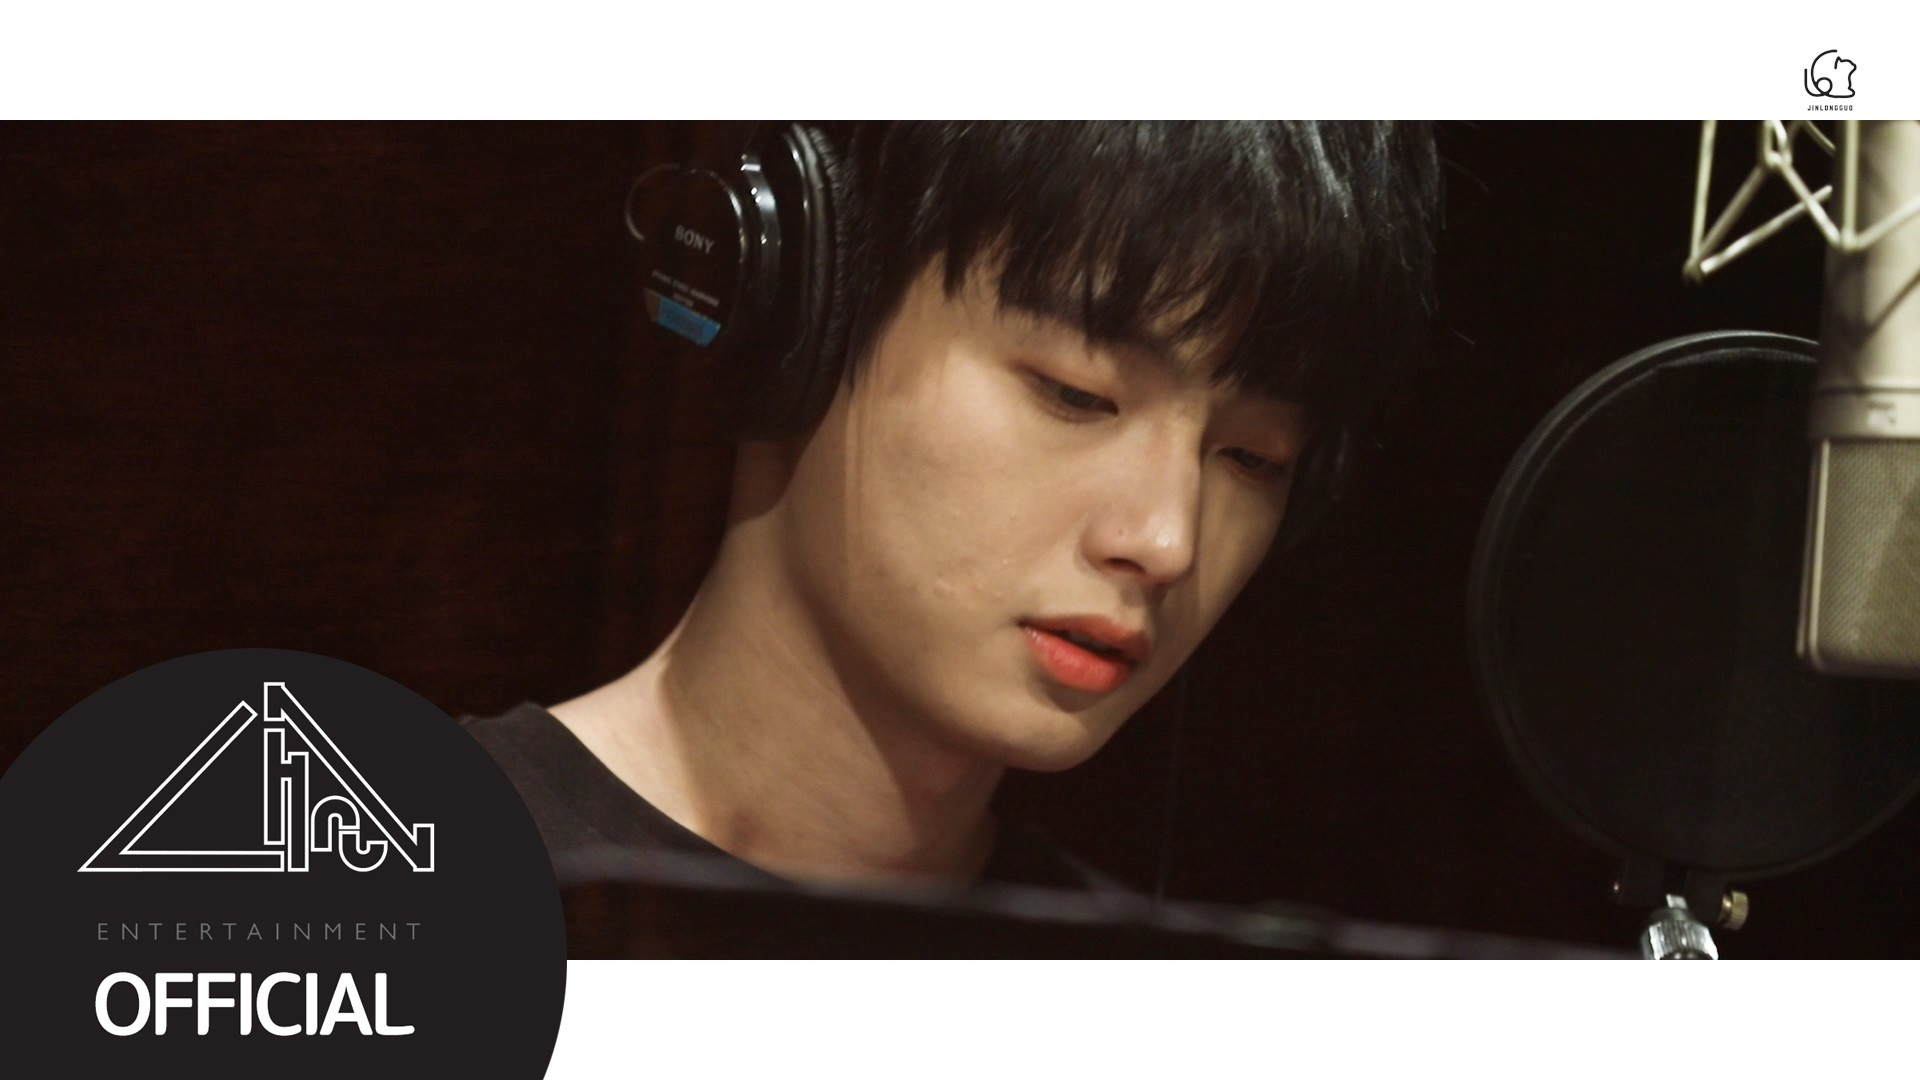 [Making Film] 김용국(JINLONGGUO) 'Friday n Night' Recording